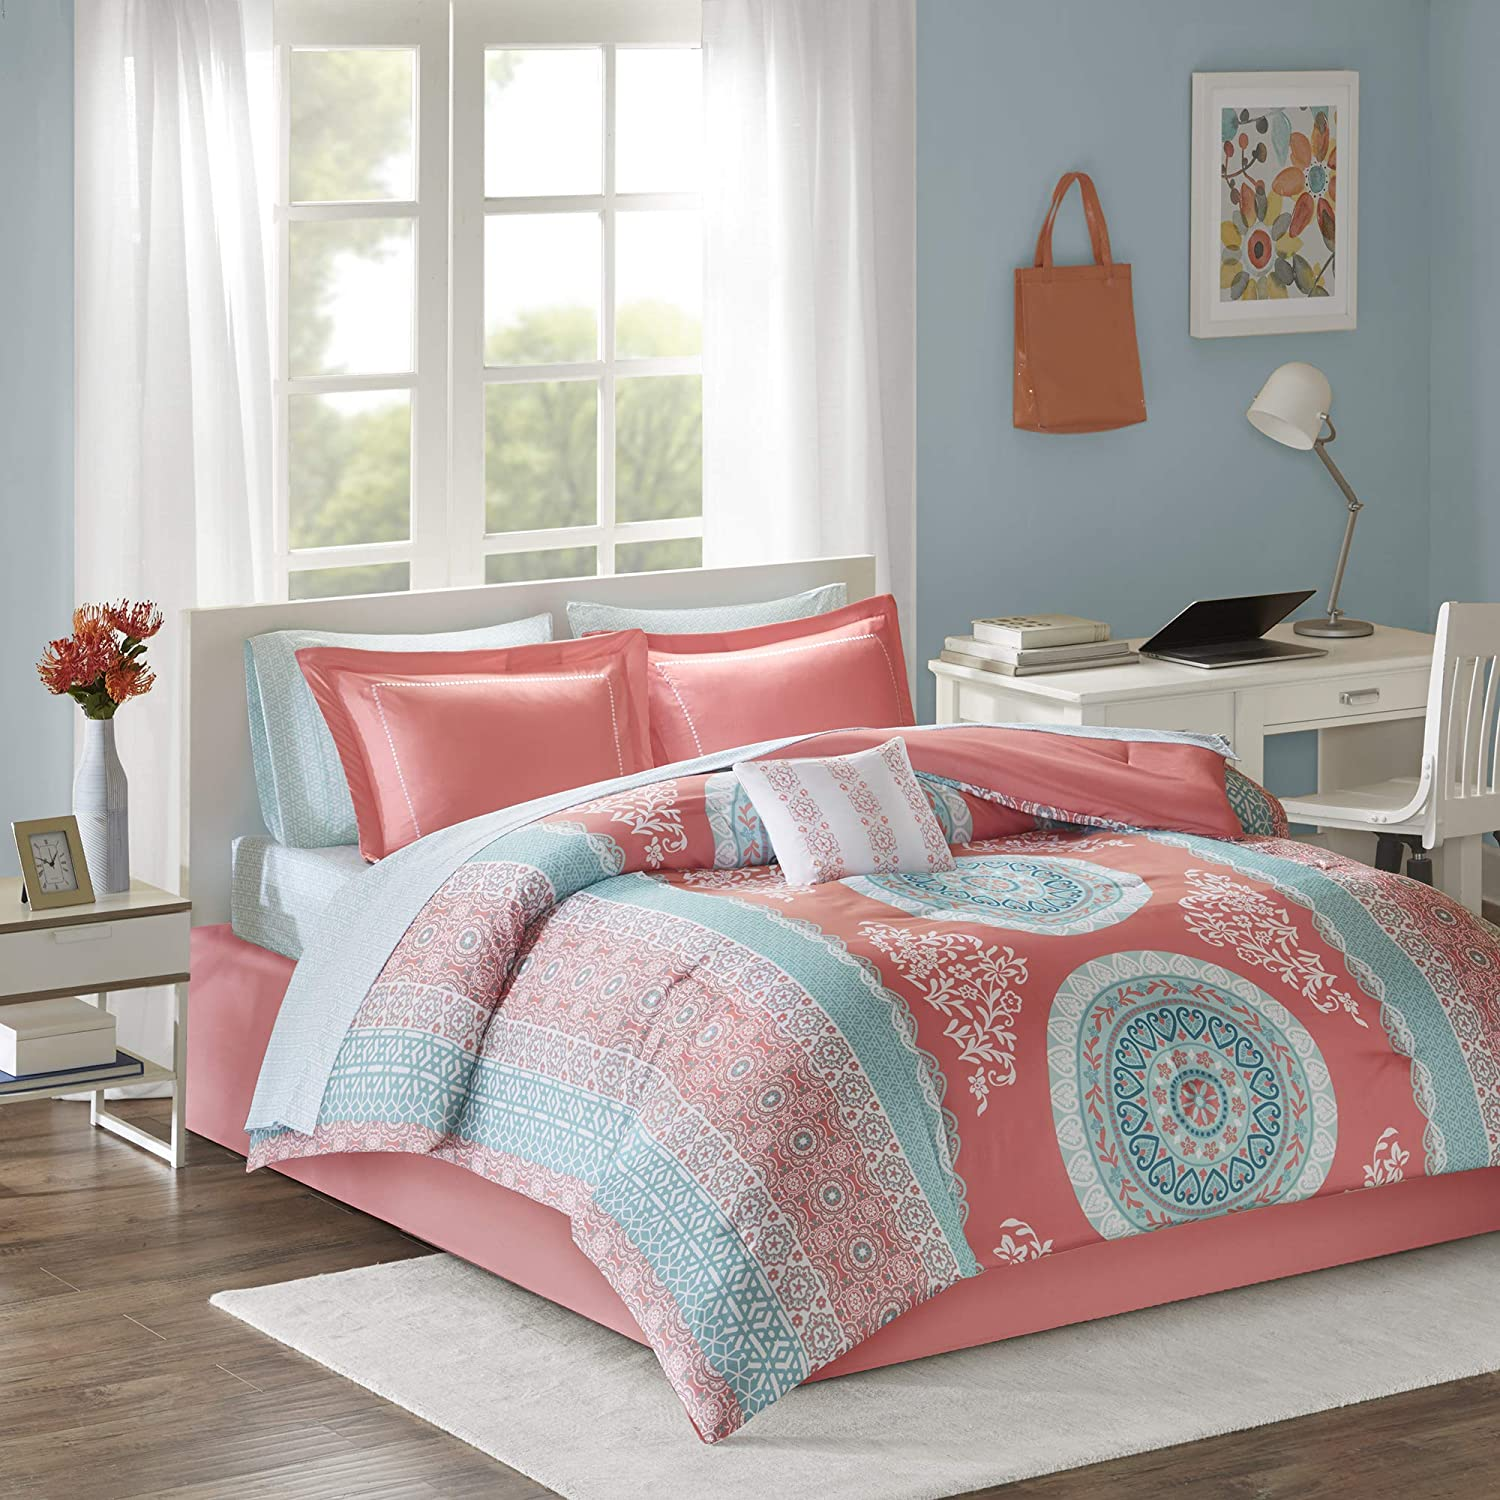 Intelligent Design Loretta Comforter Set Queen Size Bed in A Bag - Coral, Aqua, Bohemian Chic Medallion – 9 Piece Bed Sets – Ultra Soft Microfiber Teen Bedding for Girls Bedroom